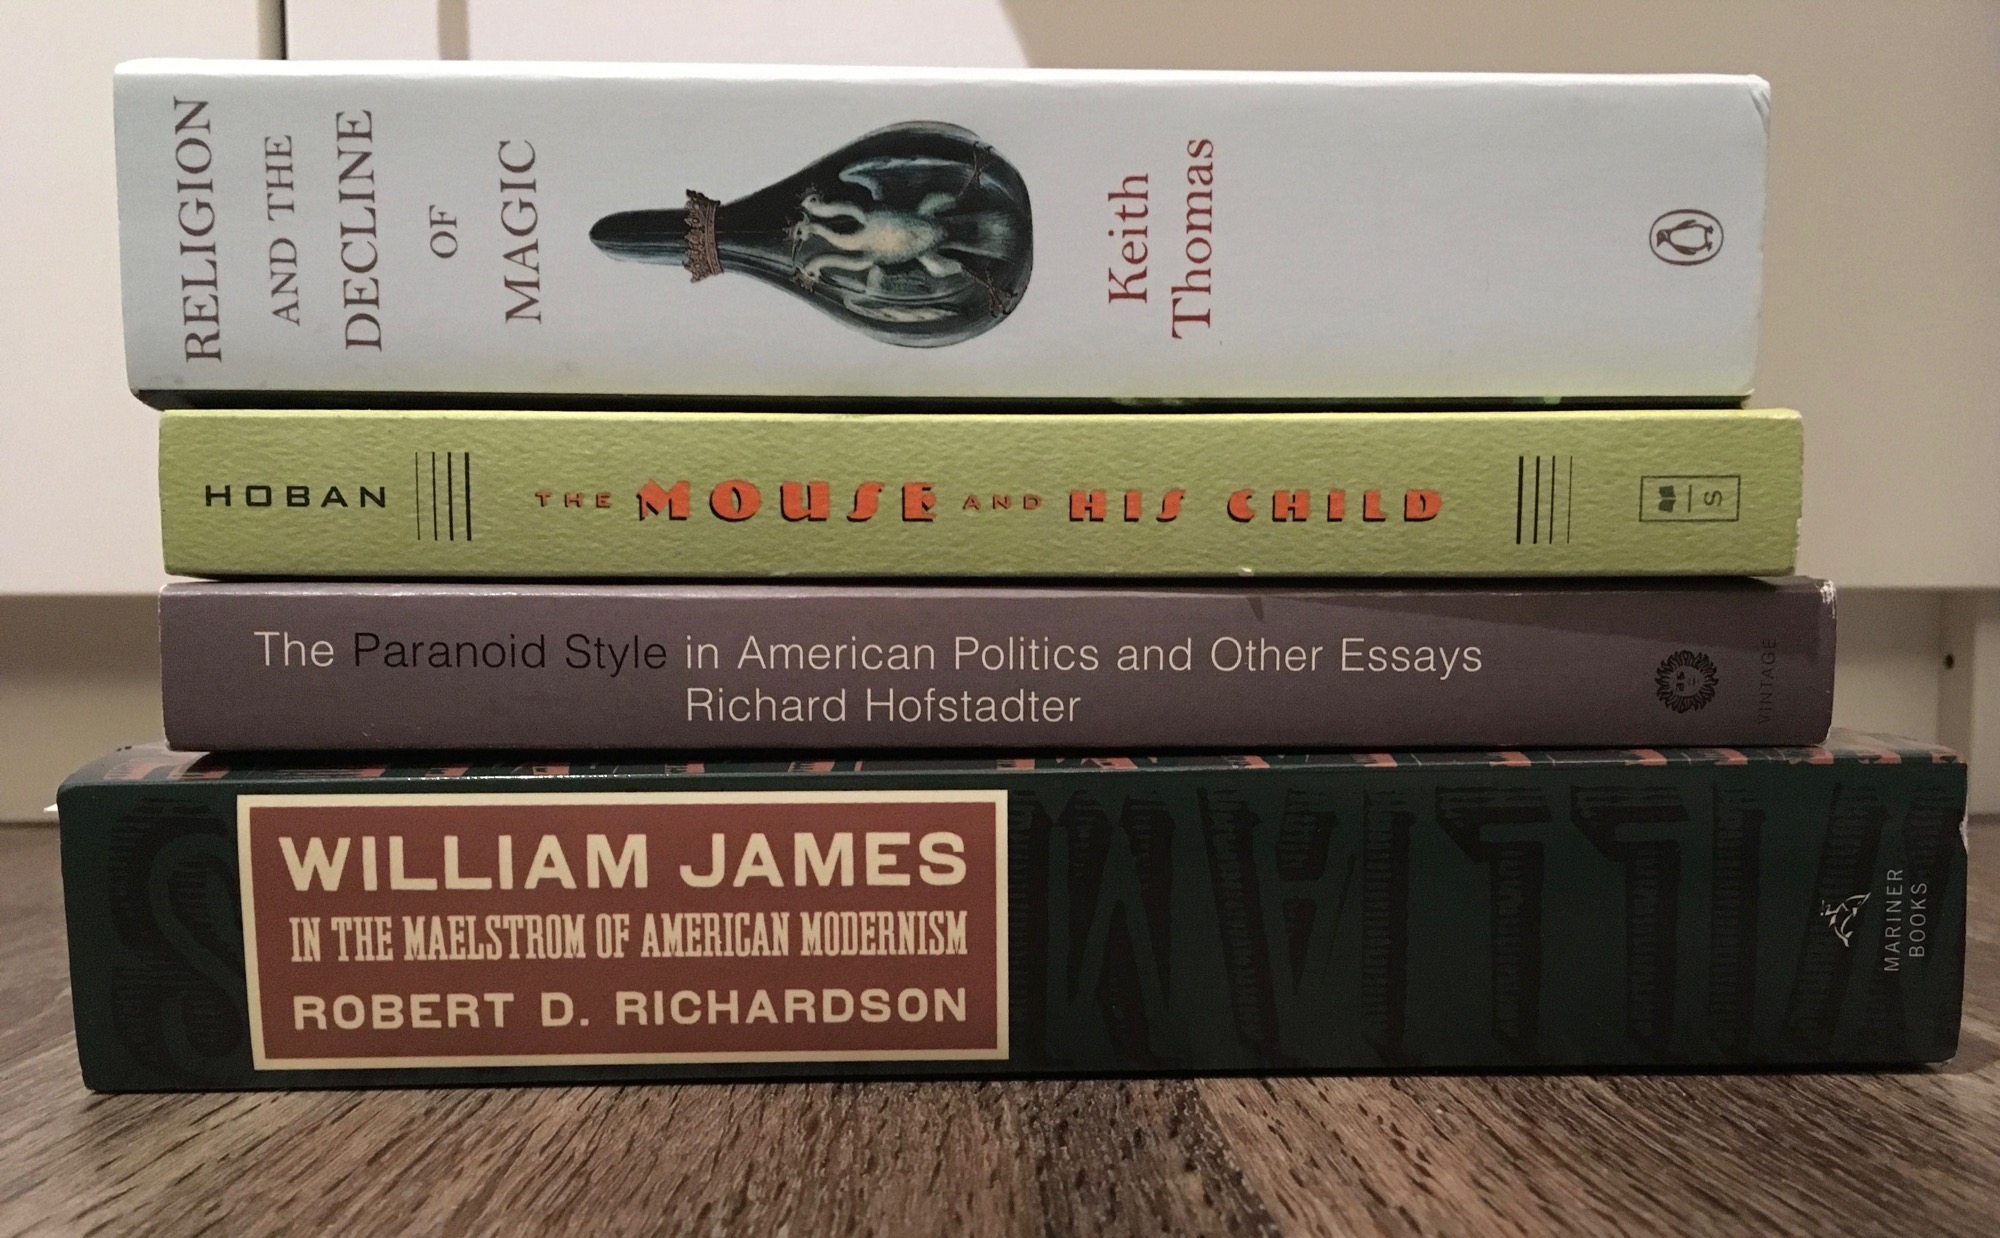 The spines of four books - Thomas: Religion and the Decline of Magic; Hoban: The Mouse and His Child; Hofstadter: The Paranoid Style in American Politics; Richardson: William James, In the Maelstrom of American Modernism